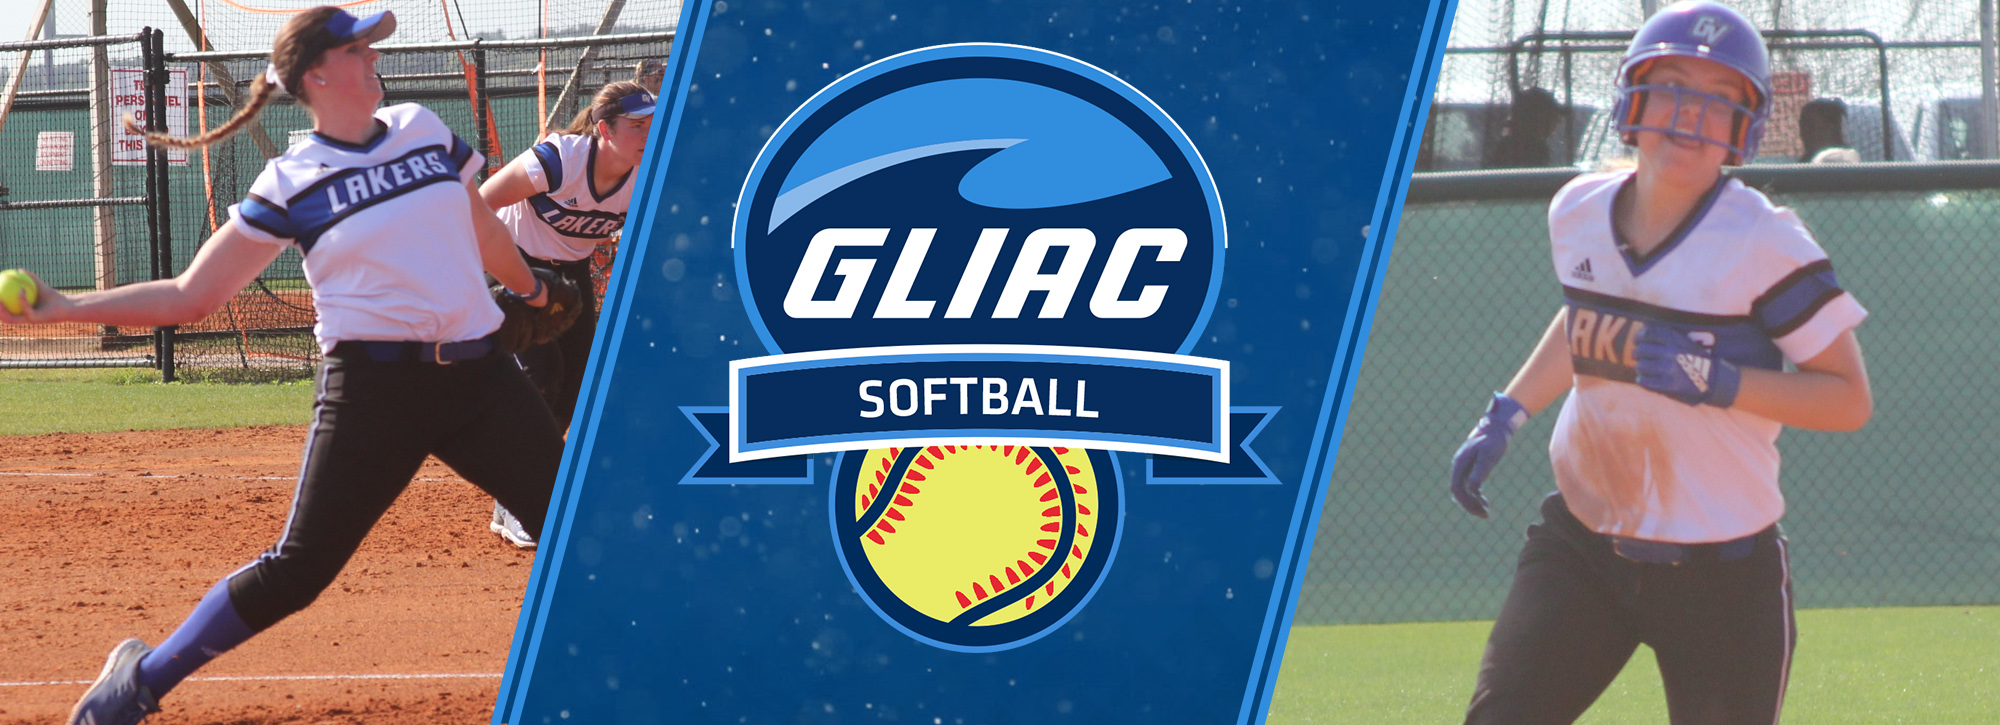 GVSU's Goble and Lipovsky sweep softball player of the week honors